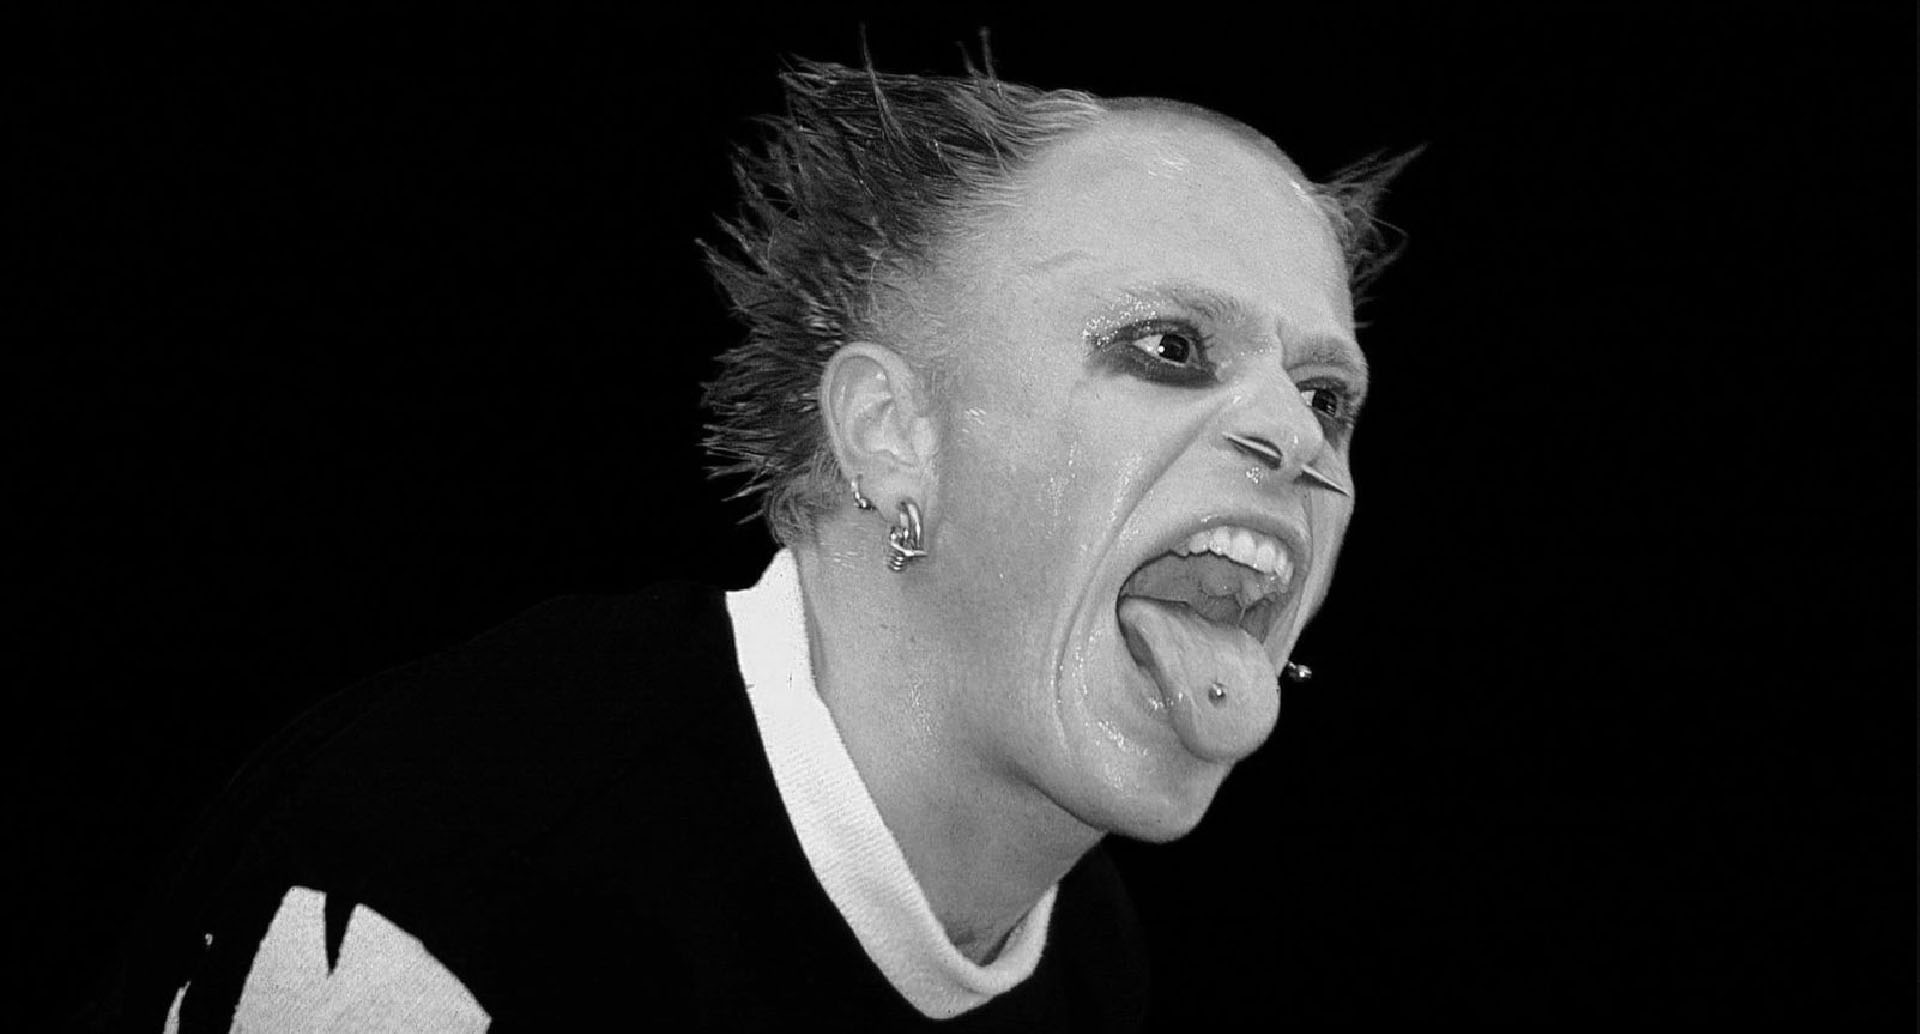 Keith Flint, The Prodigy frontman dead at 49